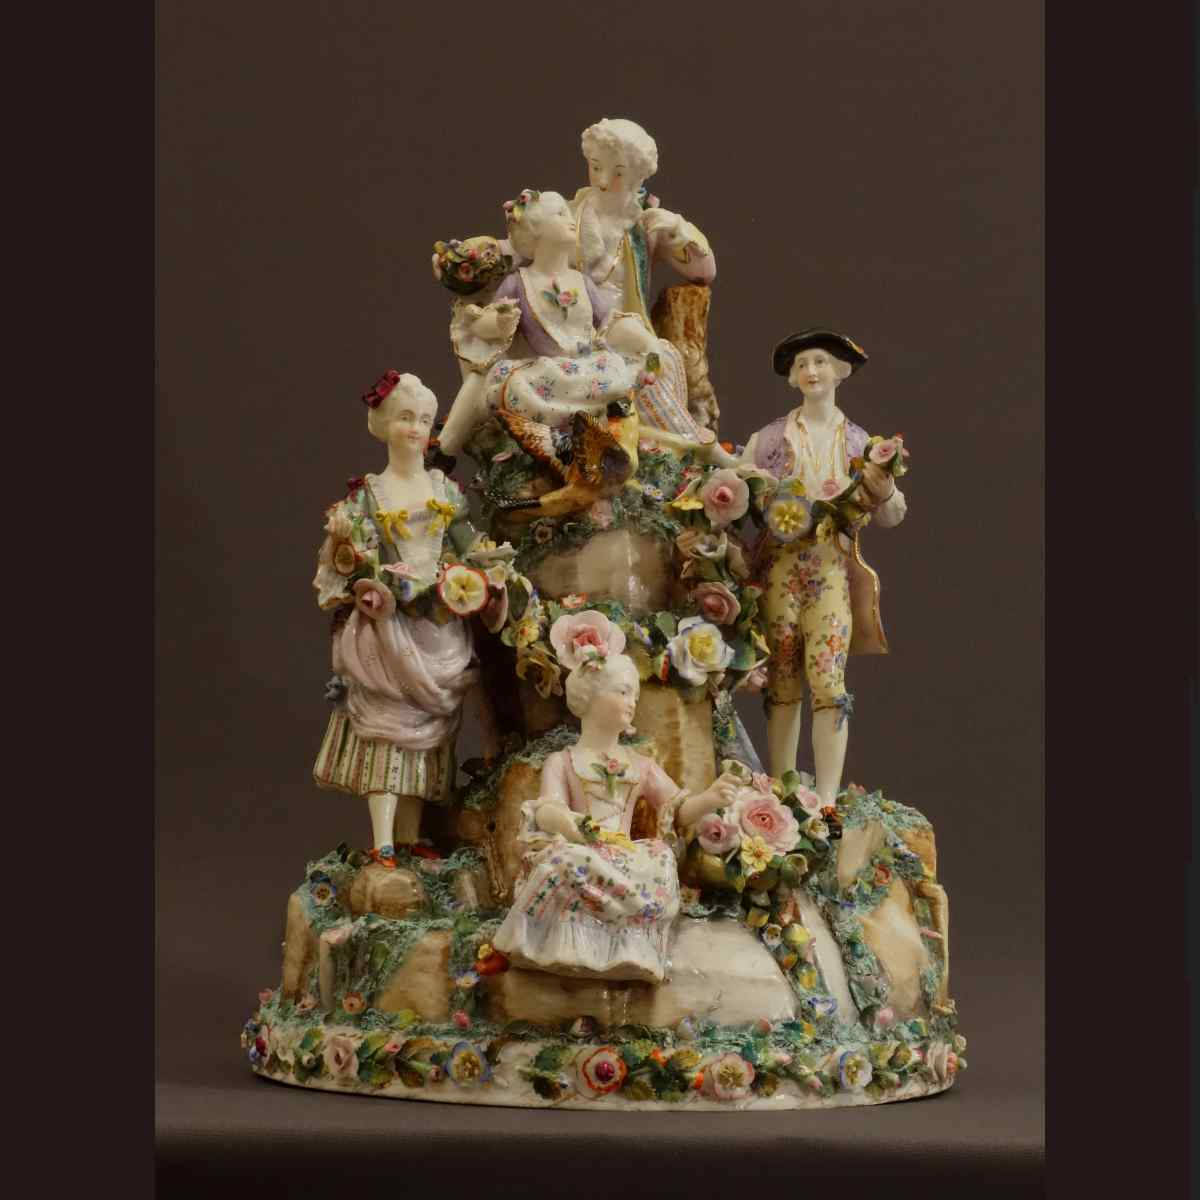 Very Grand Wallendorf Porcelain Group Middle XVIIIth